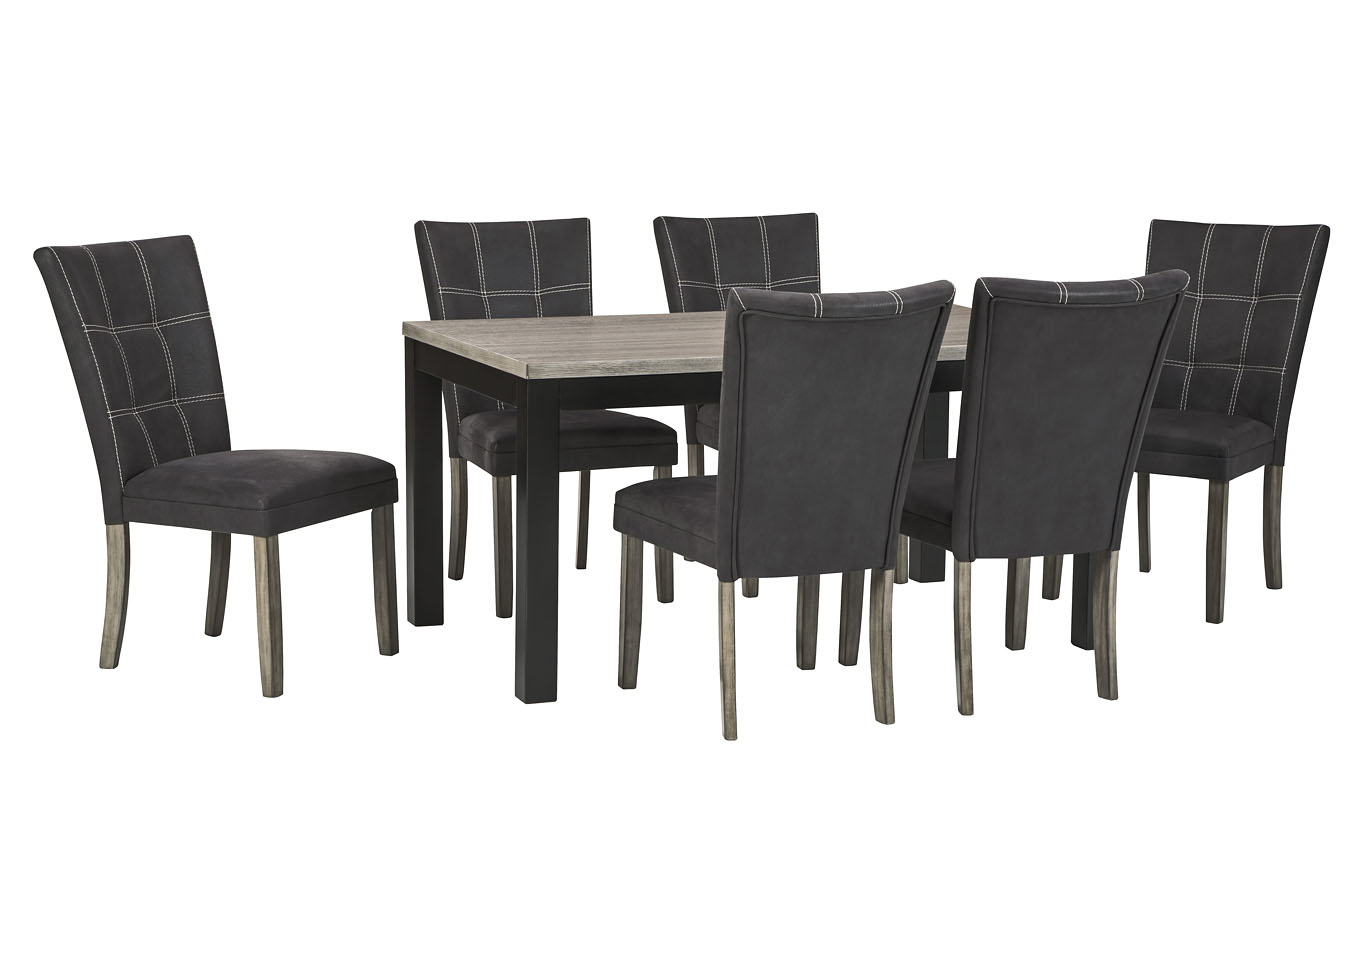 Dontally Two-tone Dining Room Table w/6 Side Chair,Benchcraft